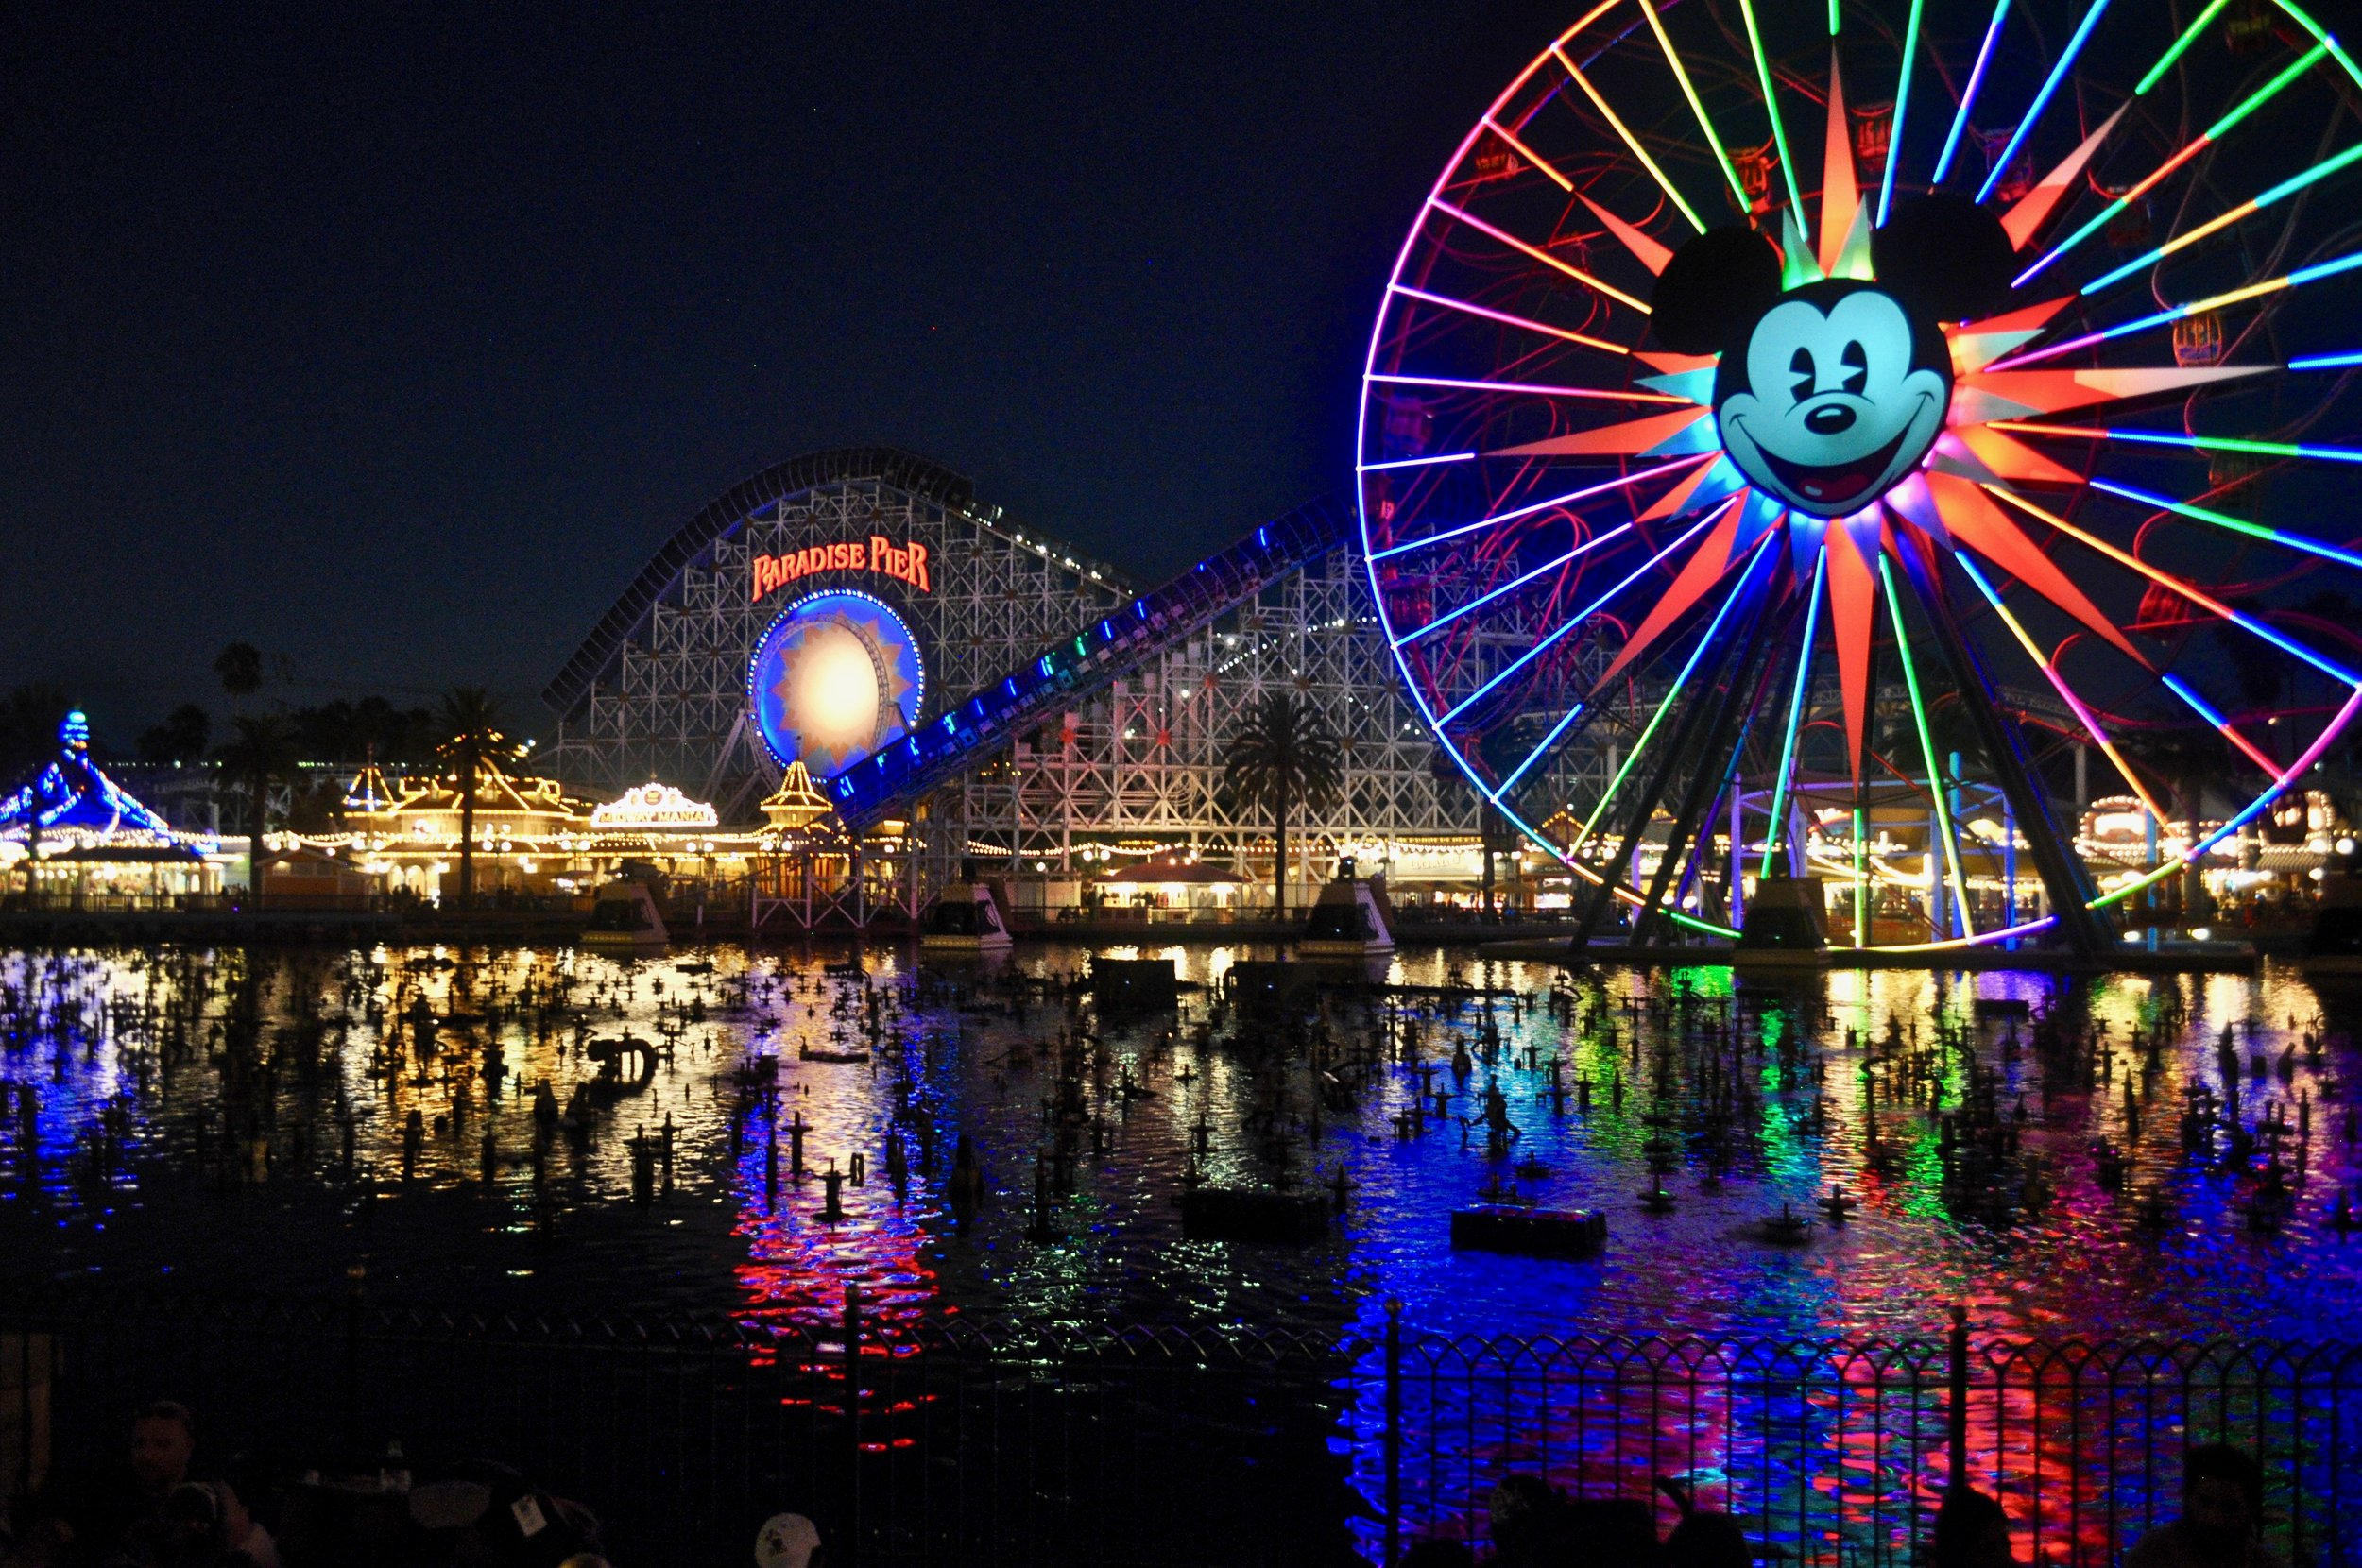 Disney's California Adventure at Night - MIckey's Fun Wheel and Paradise Pier - How to Make the Most of Disney Theme Parks as an Adult